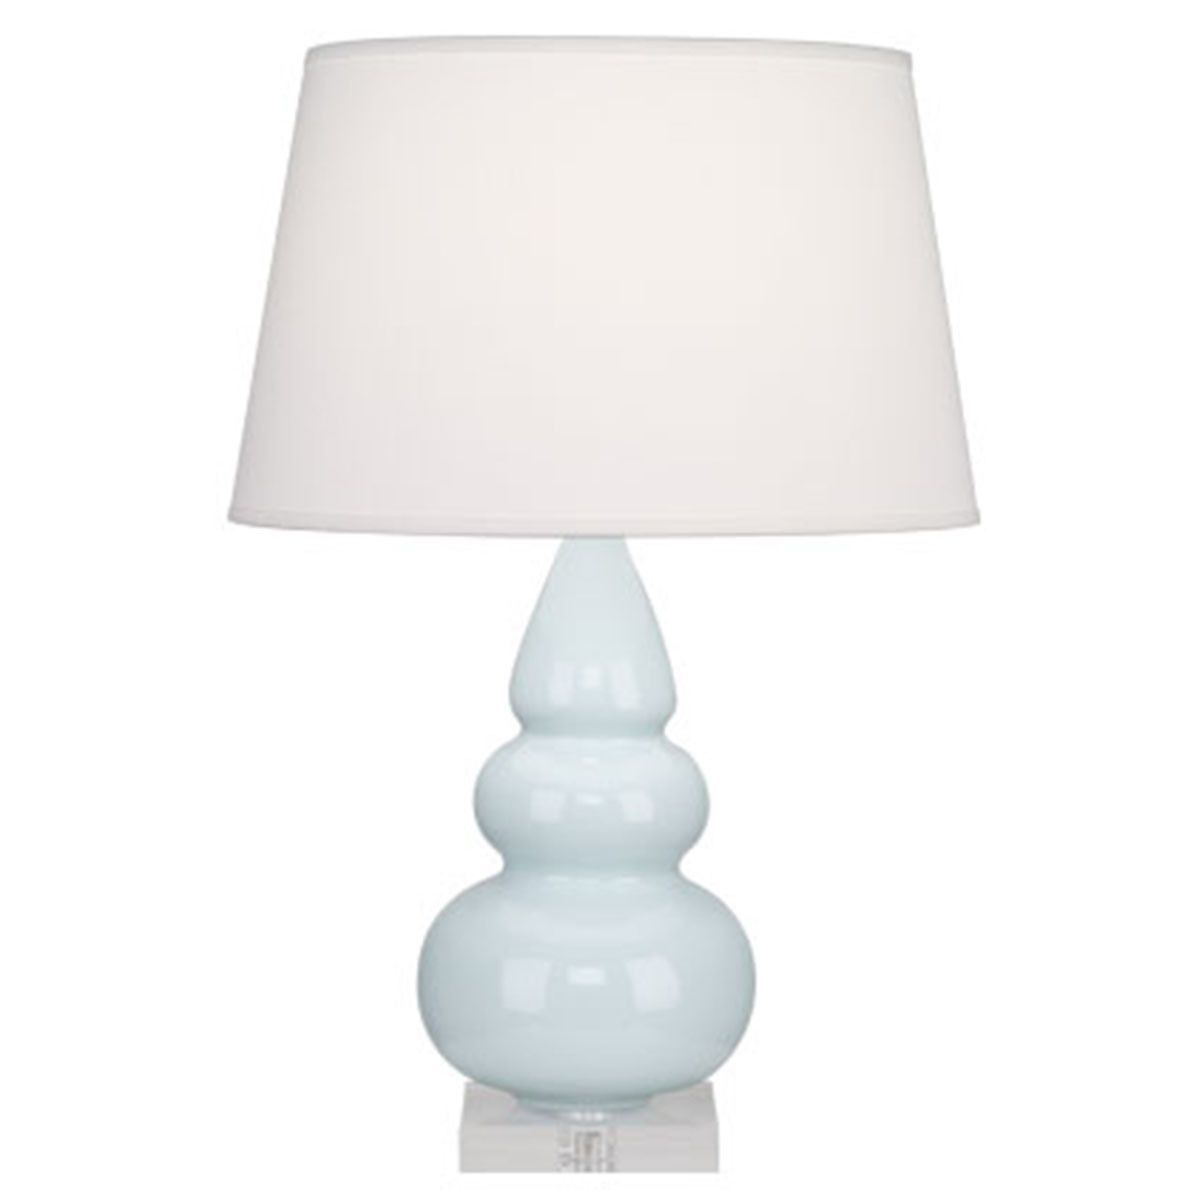 Robert Abbey Small Triple Gourd Accent Table Lamp Idea